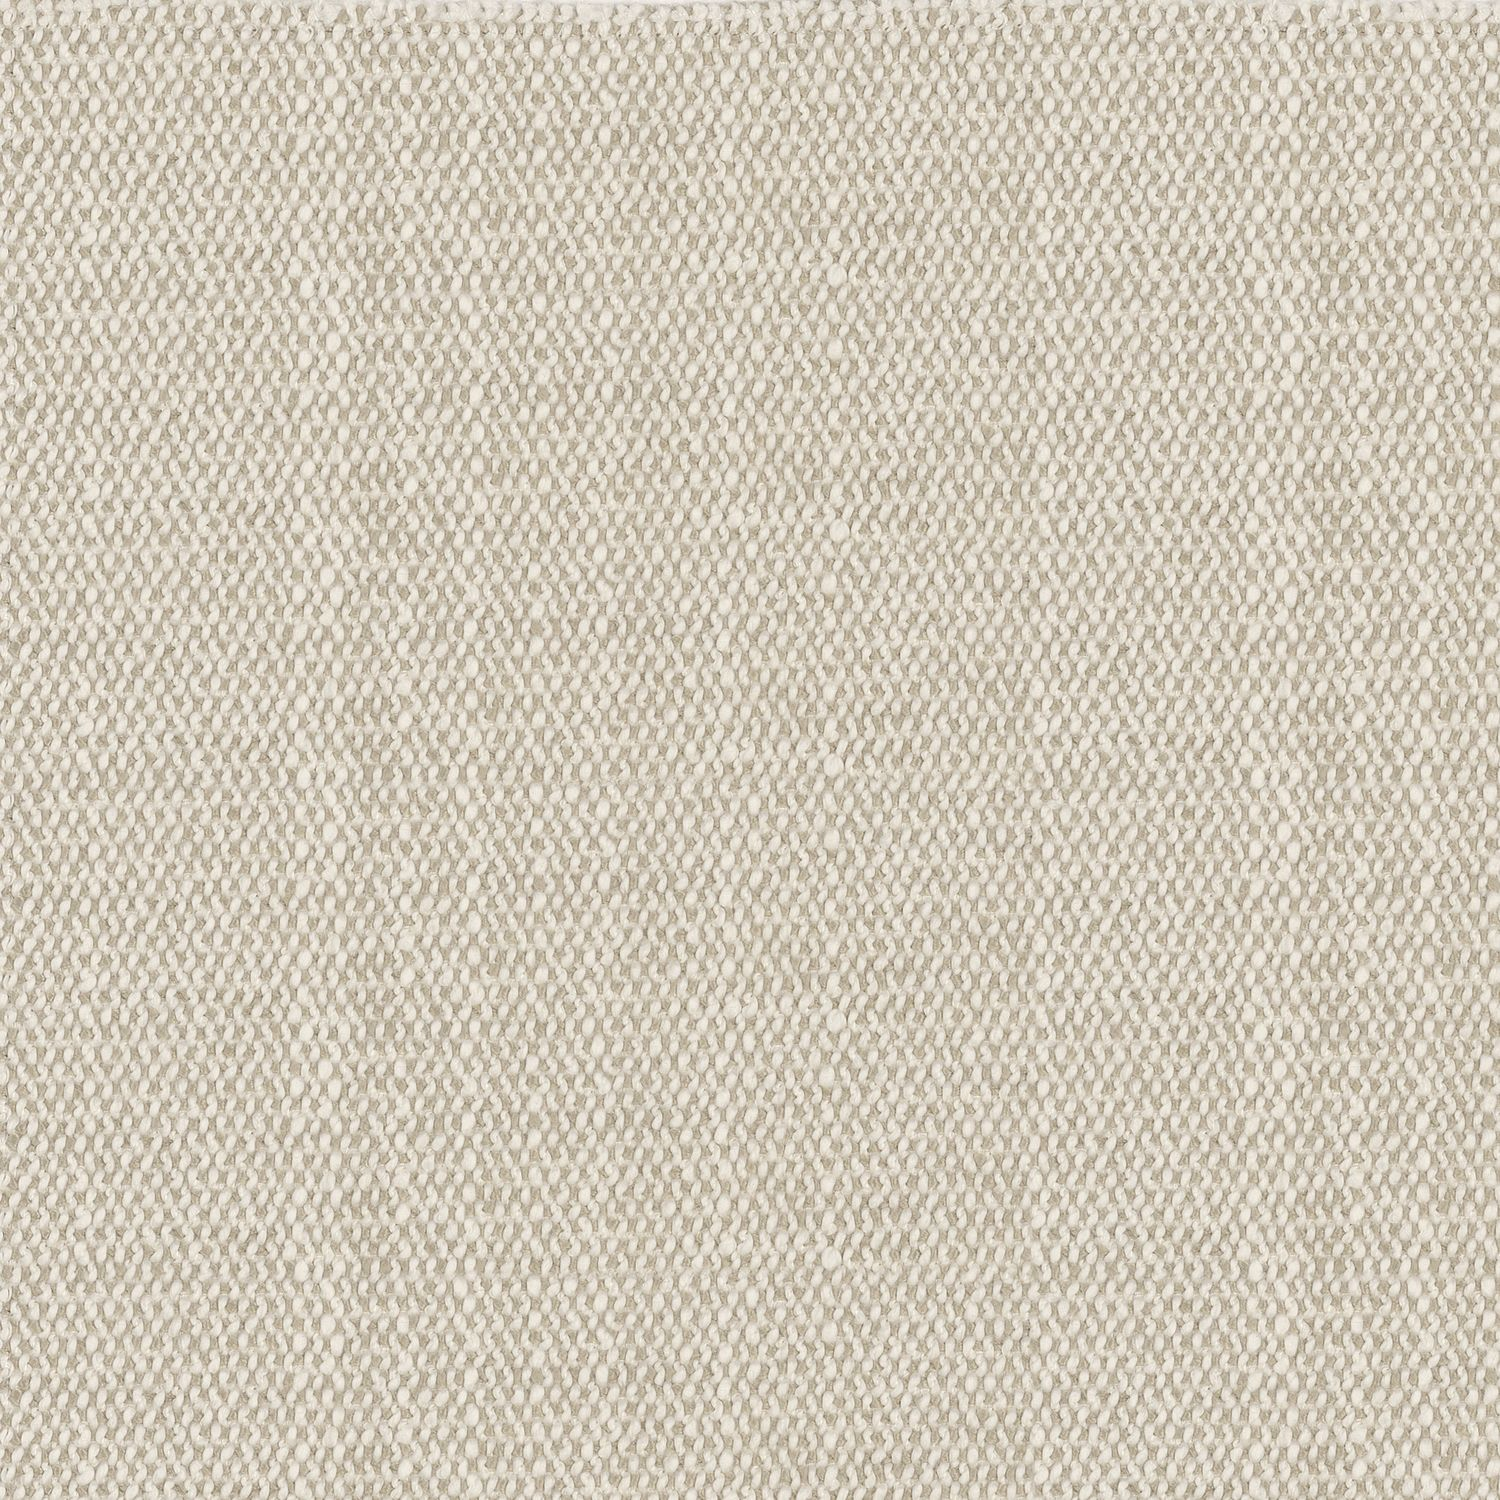 43590324 Collection - Rondo Fabric